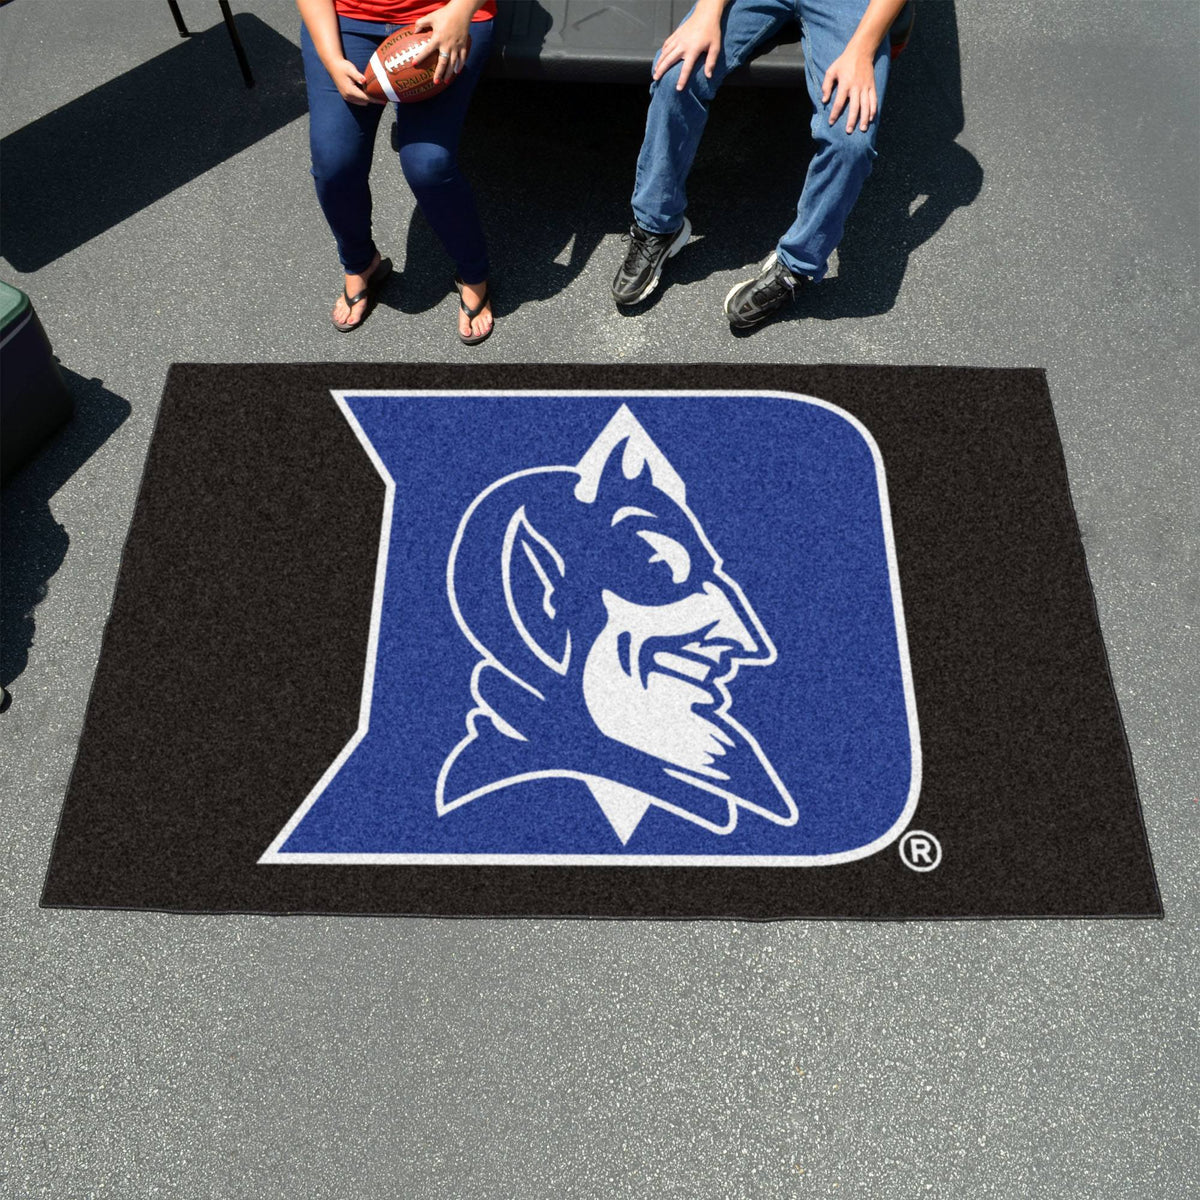 Collegiate - Ulti-Mat: A - L Collegiate Mats, Rectangular Mats, Ulti-Mat, Collegiate, Home Fan Mats Duke